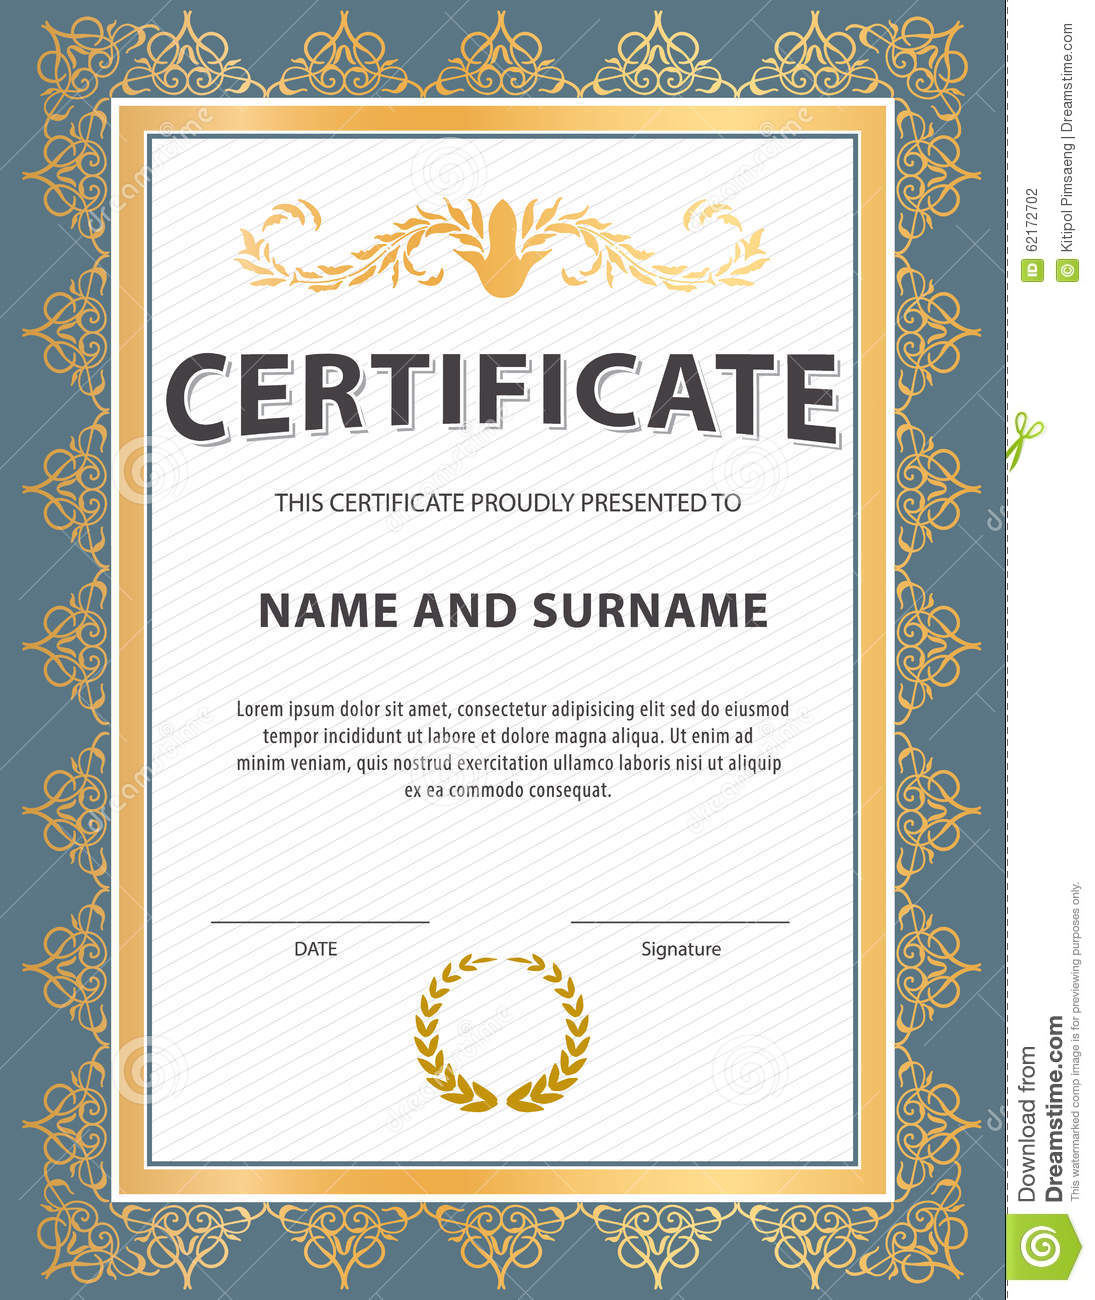 certificate-template-diploma-letter-size-vector-vertical-62172702 Gold Letter Templates on gold invitation templates, gold star templates, gold design templates, gold banners, gold letter fonts, gold business card templates, gold black templates, gold certificate templates, gold letter stickers, gold fish templates,